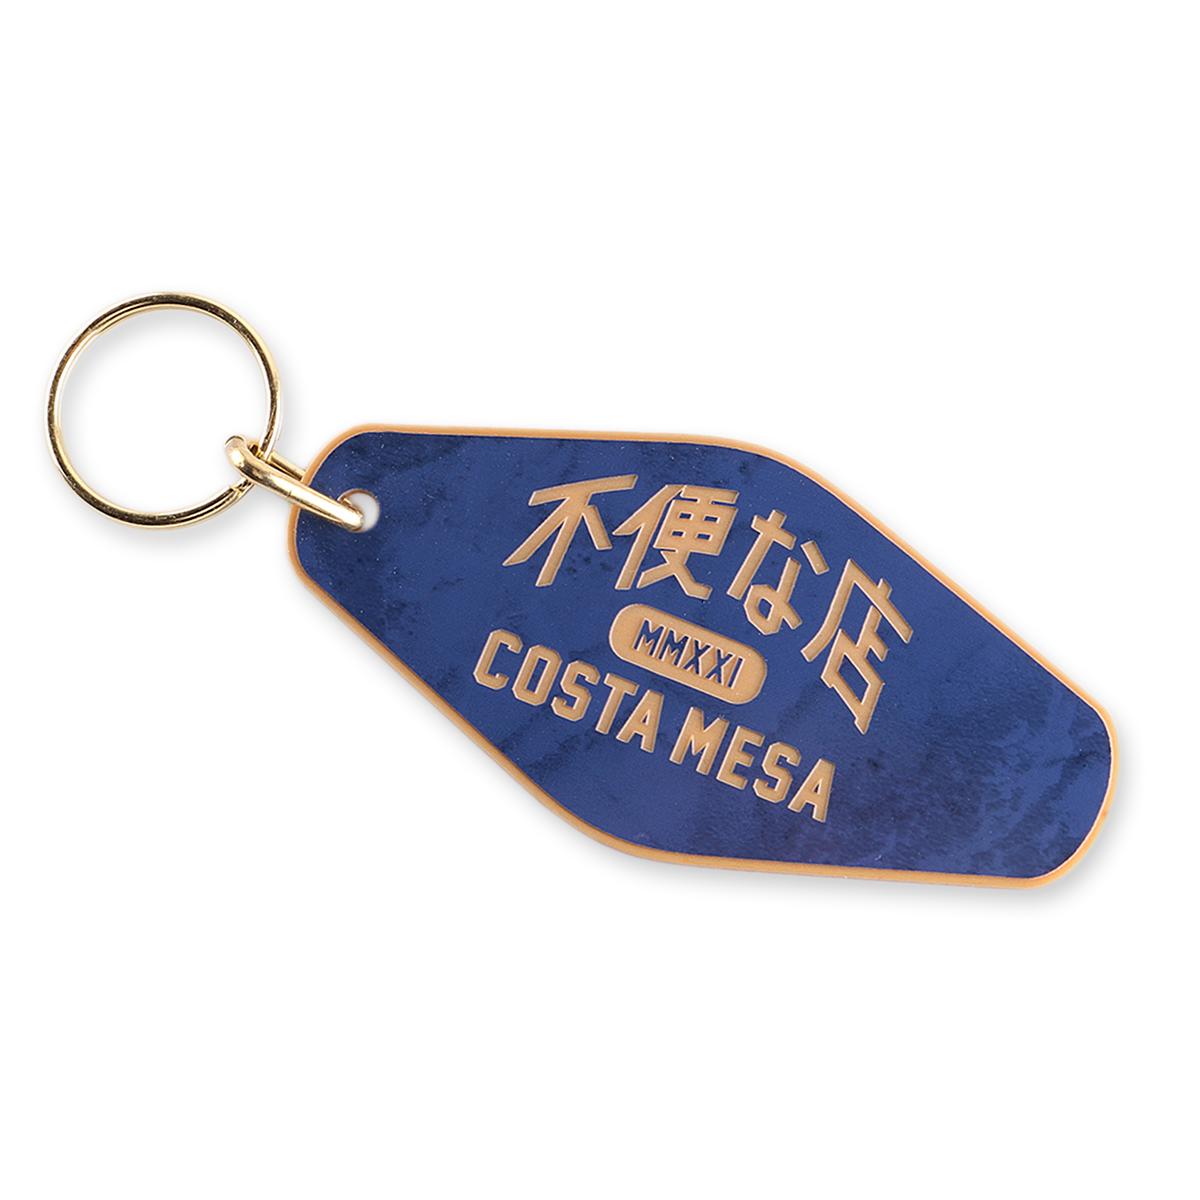 不便な店 Costa Mesa Key Tag - Blue Marble